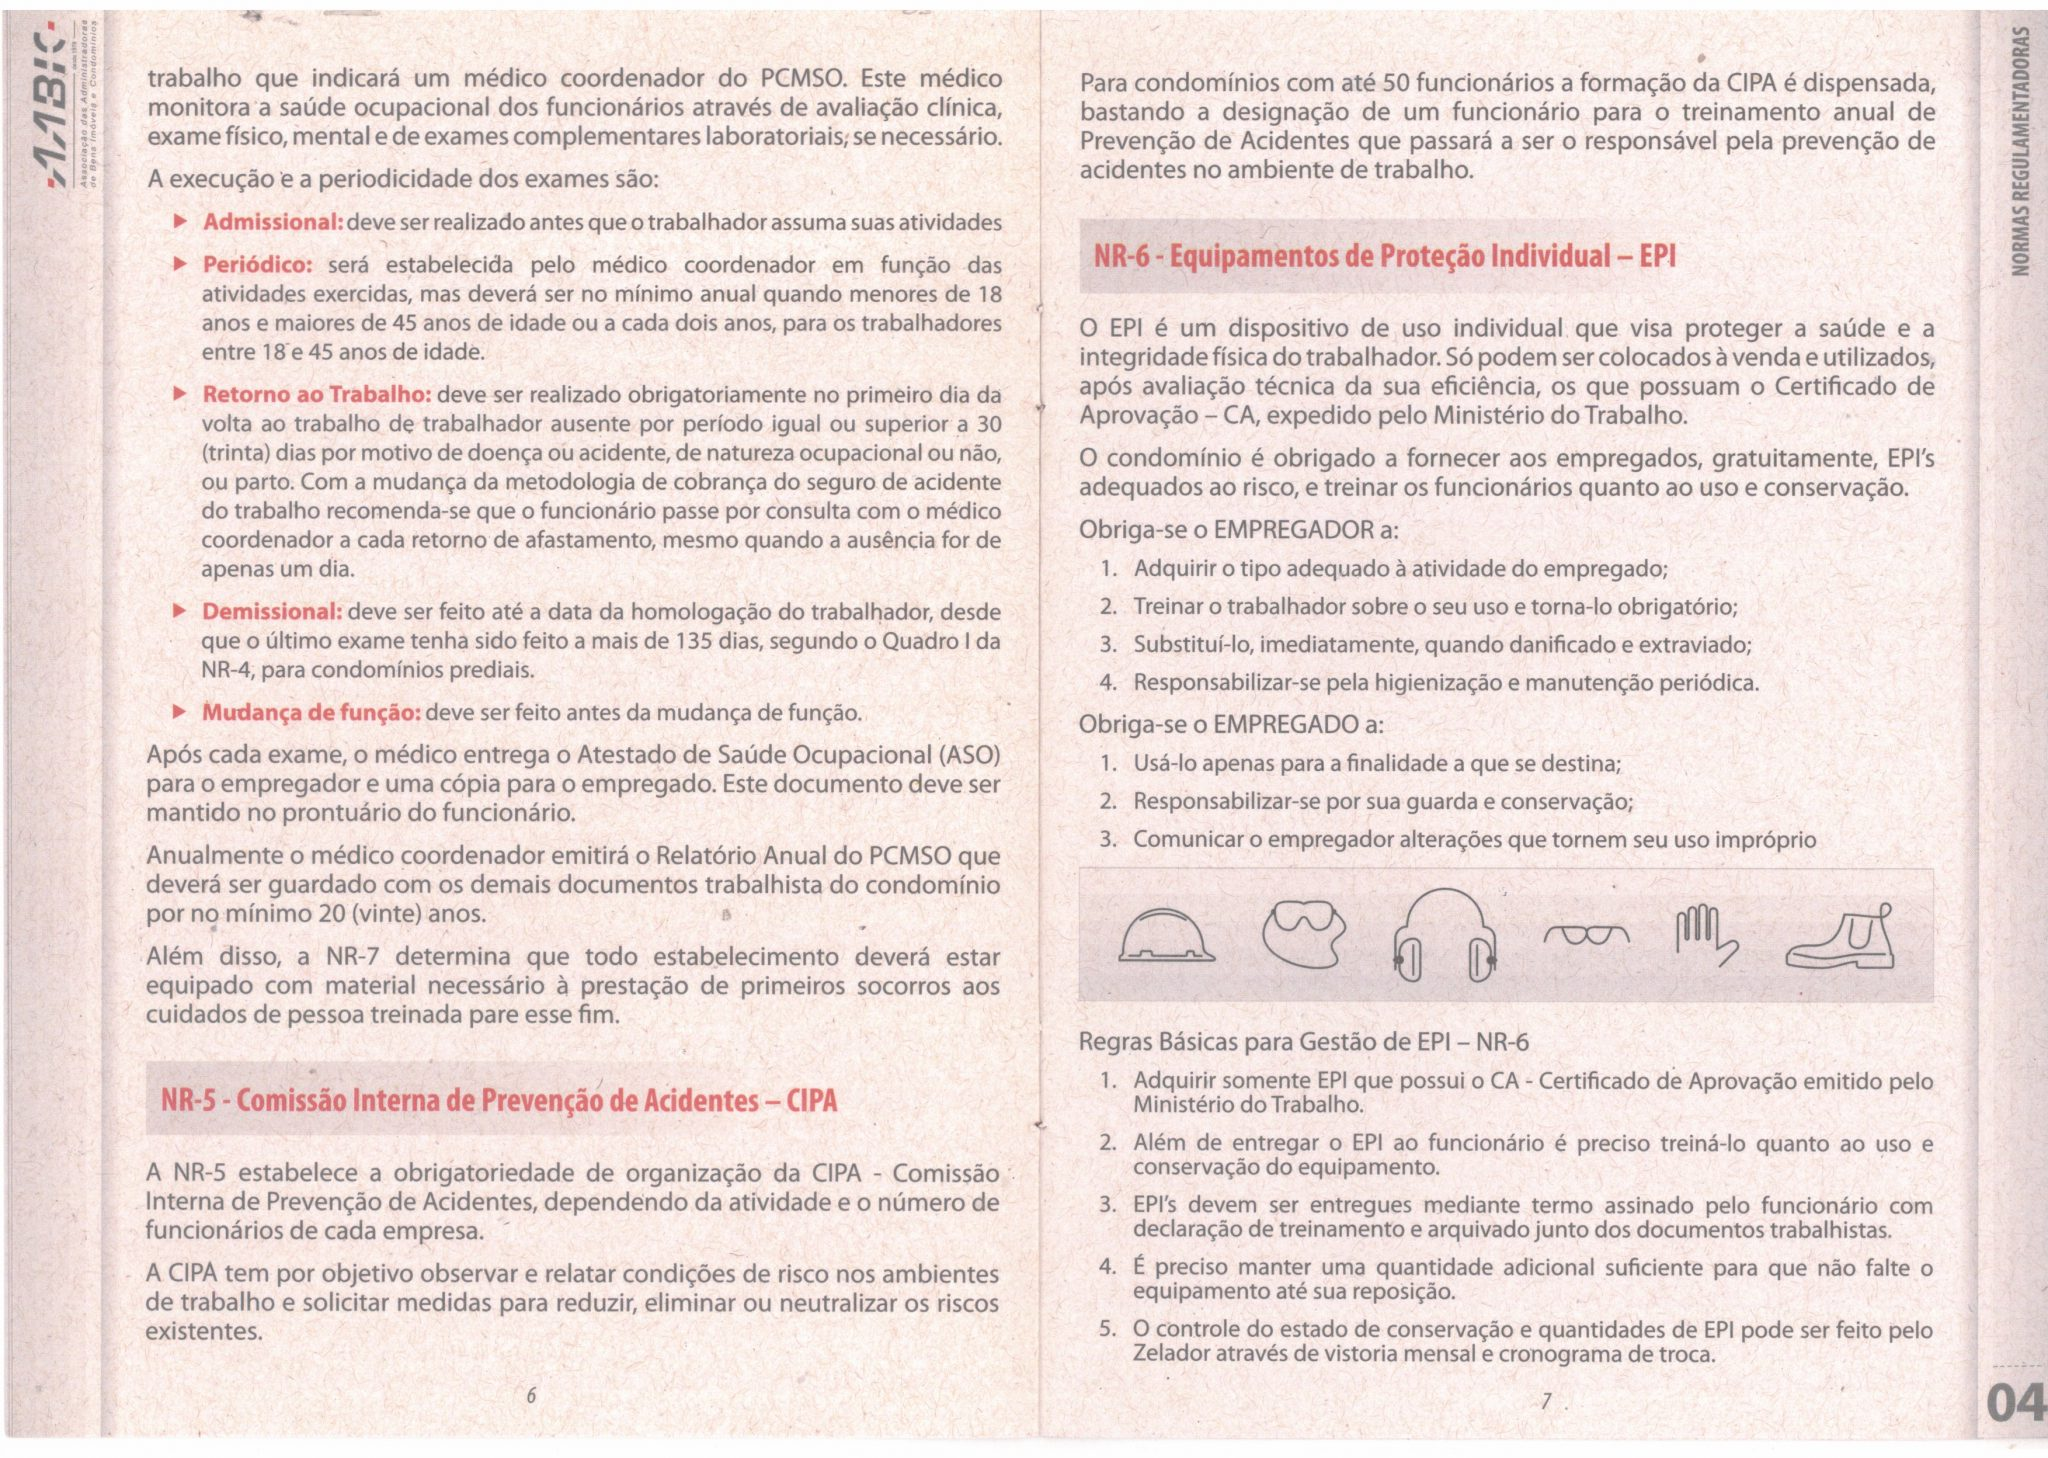 Scan_20190311_162851_003